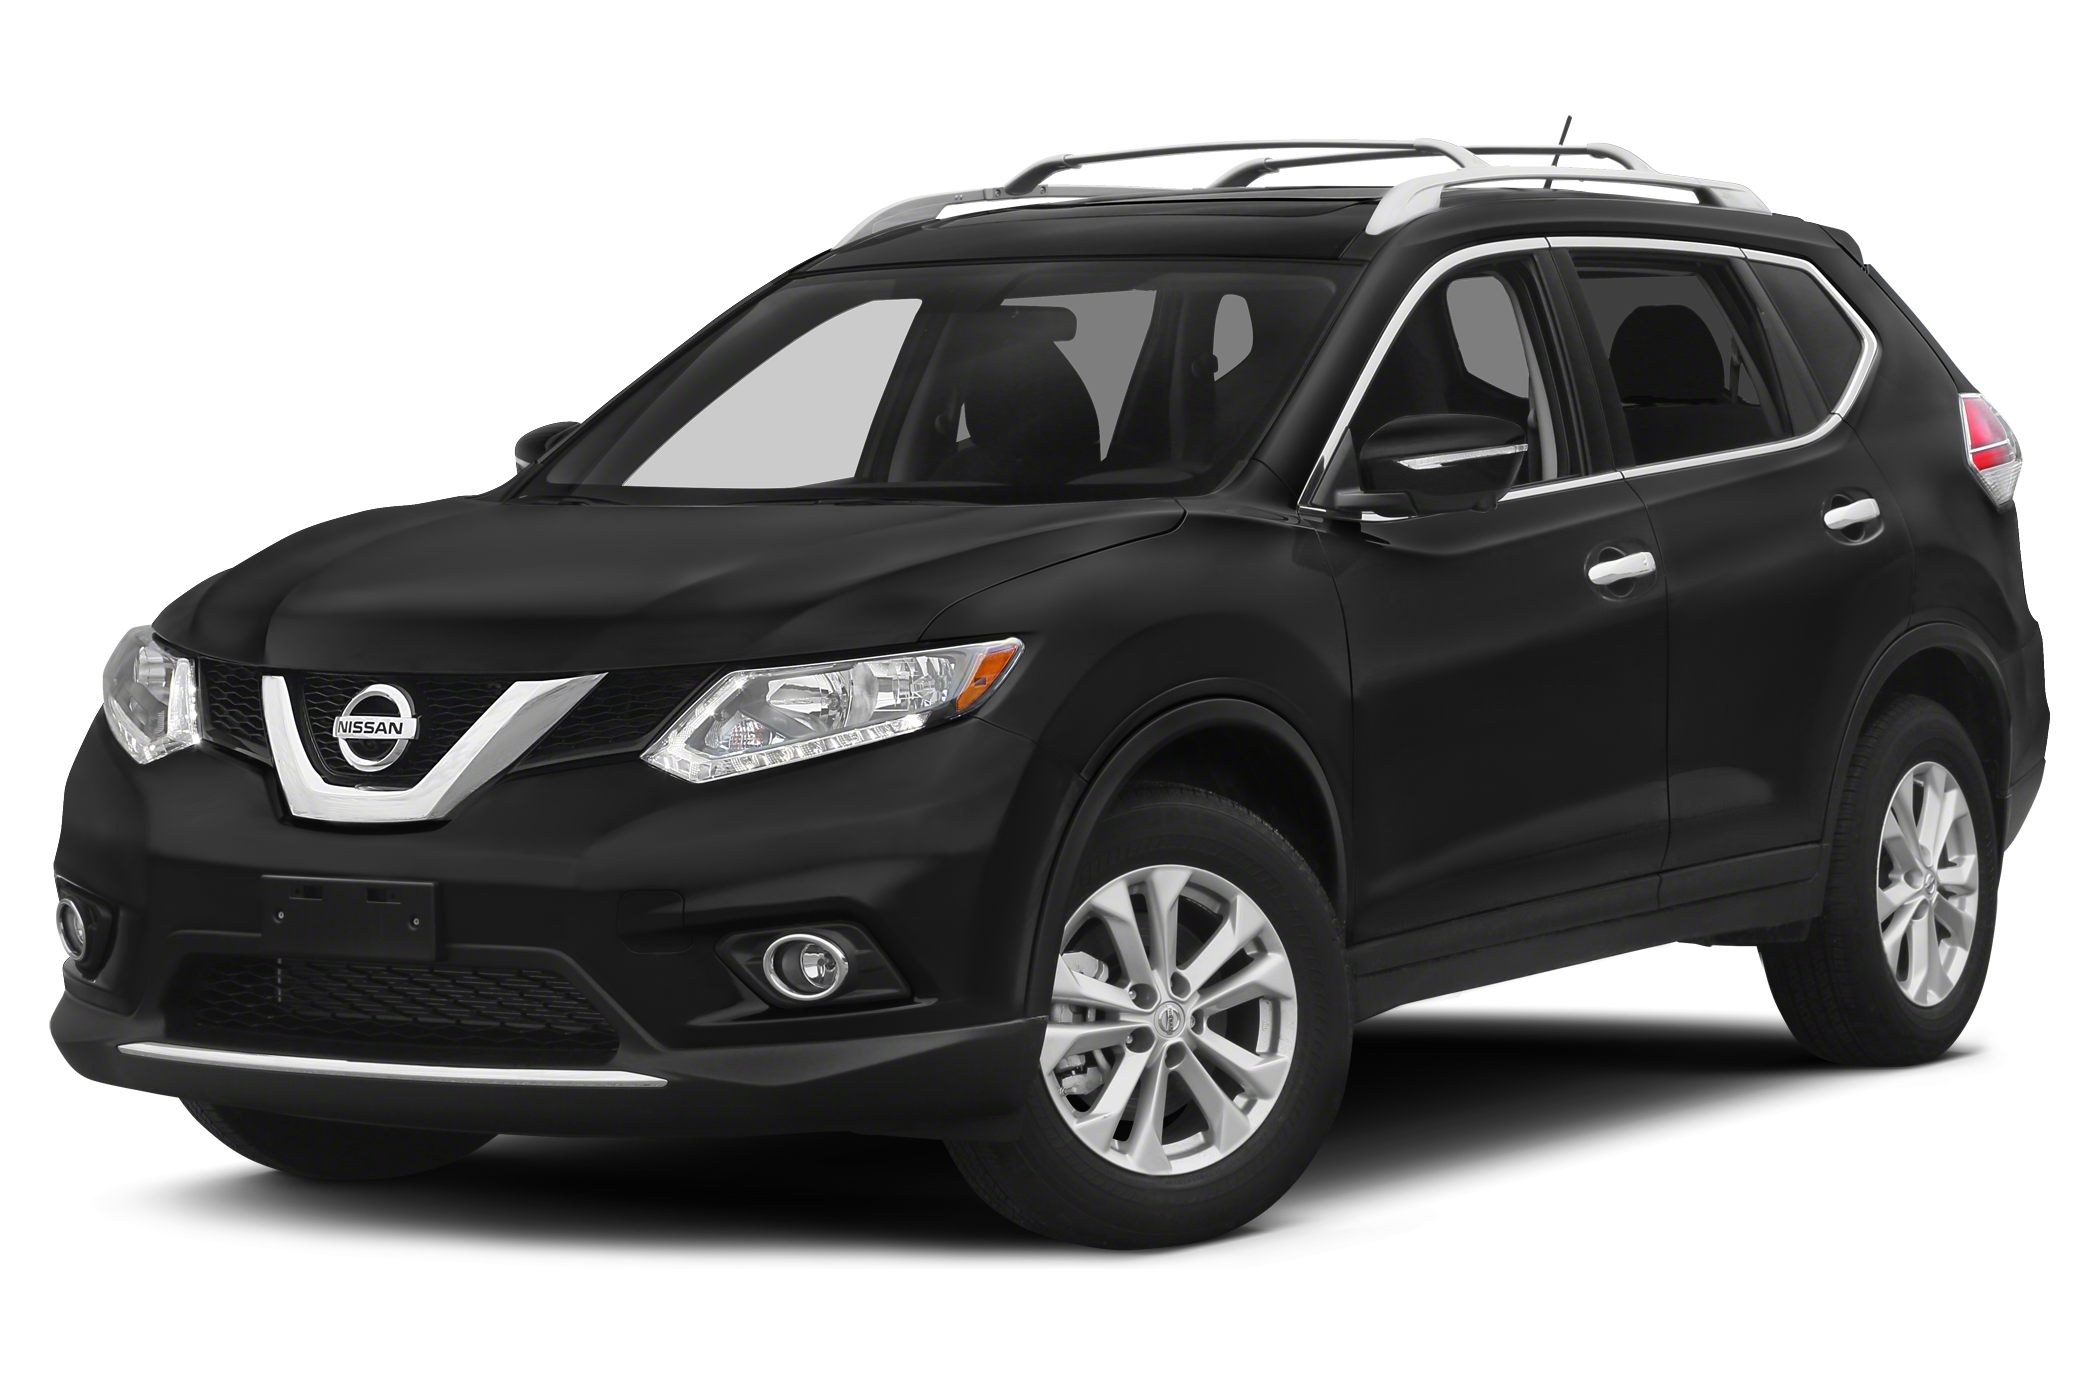 2015 Nissan Rogue SL SUV for sale in Johnson City for $33,190 with 0 miles.